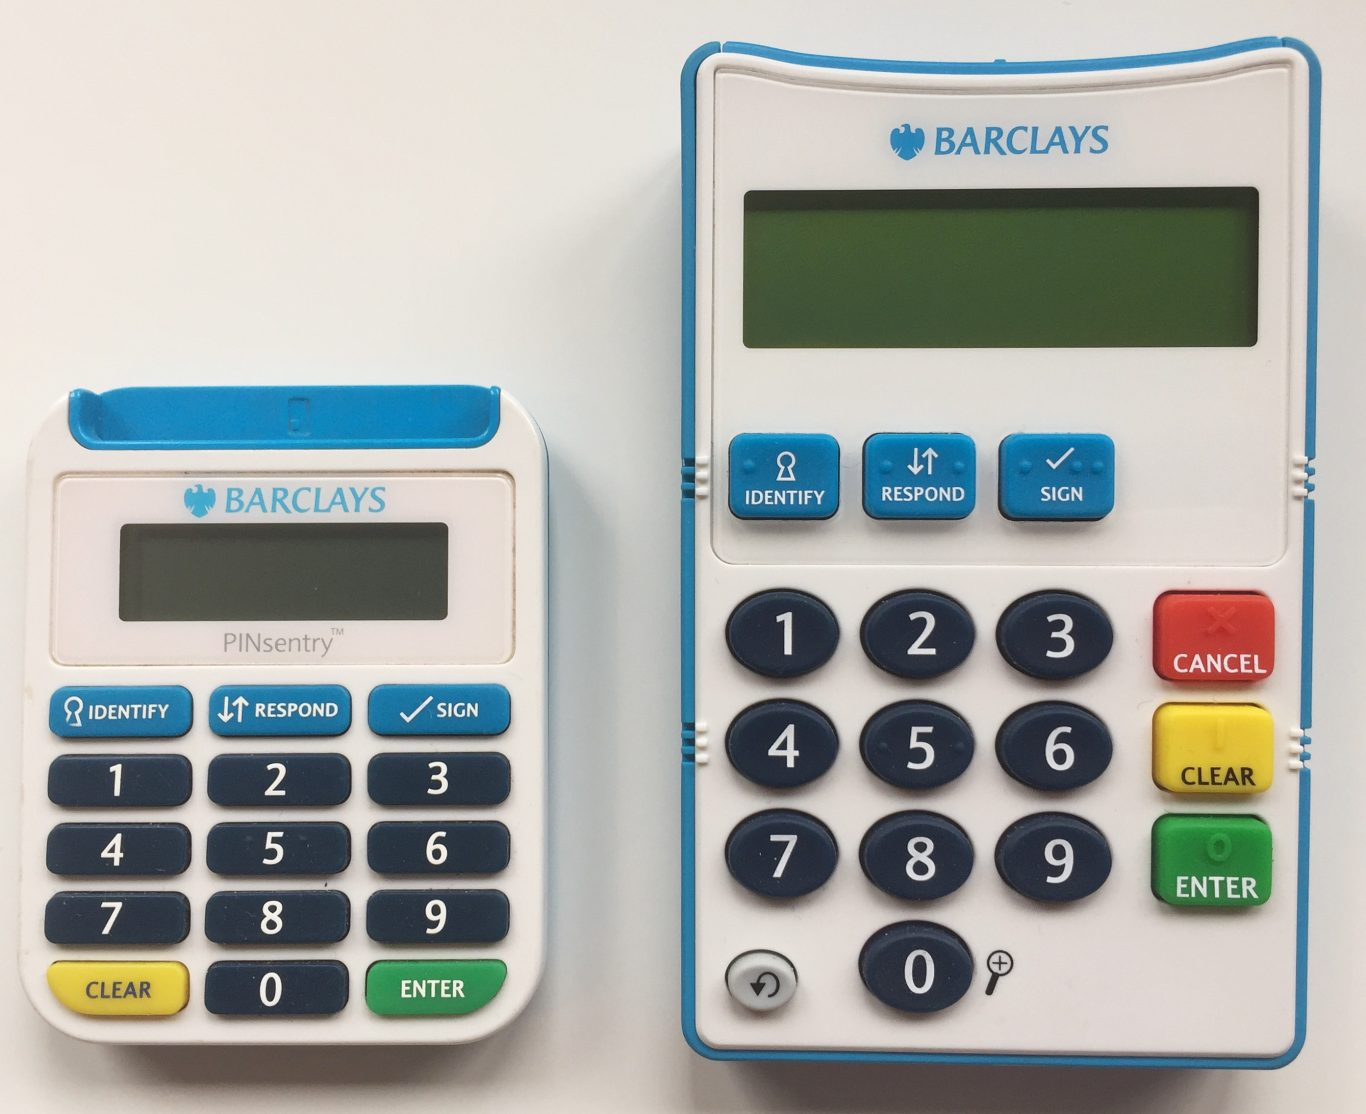 A new talking card reader (right) with super-sized features to help customers with sight and dexterity issues to access its services more easily (Barclays/PA)